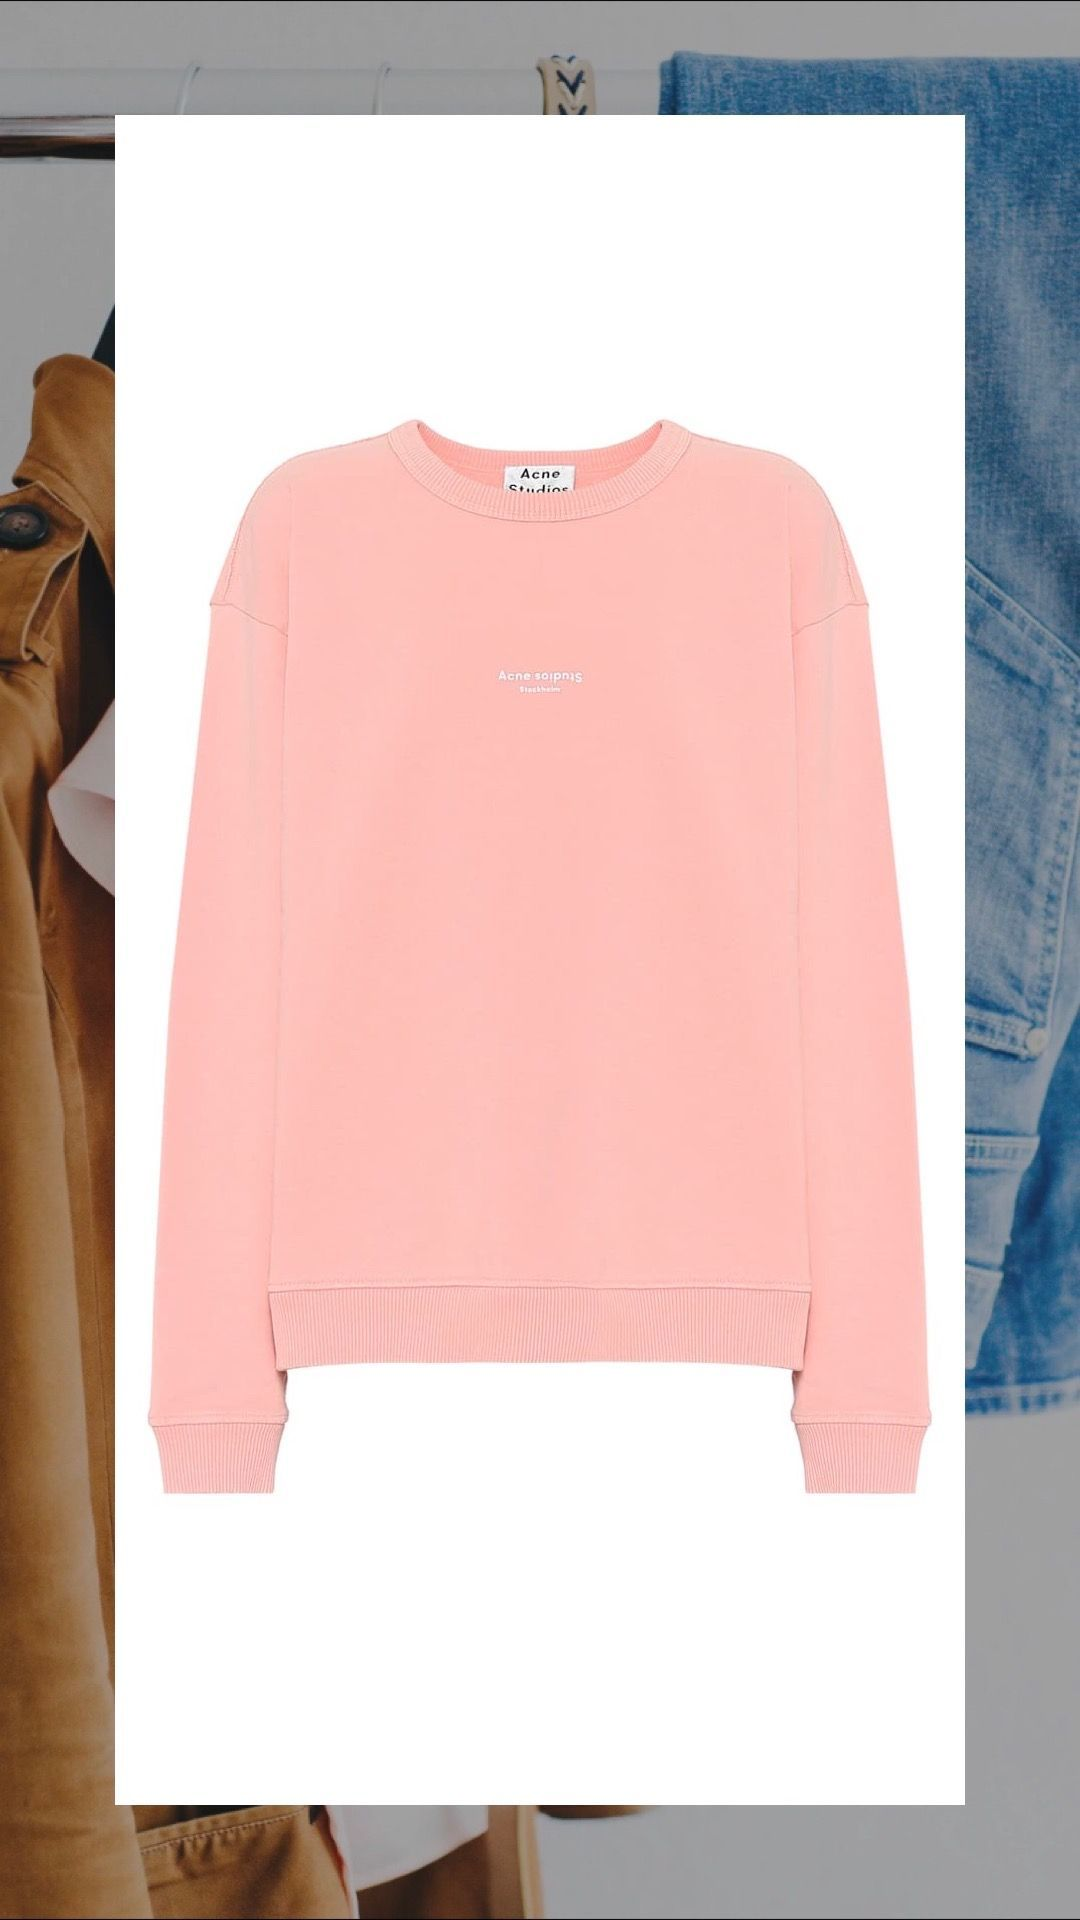 65 Best Stylight ♥ Pastell images in 2020 | Pretty pastel